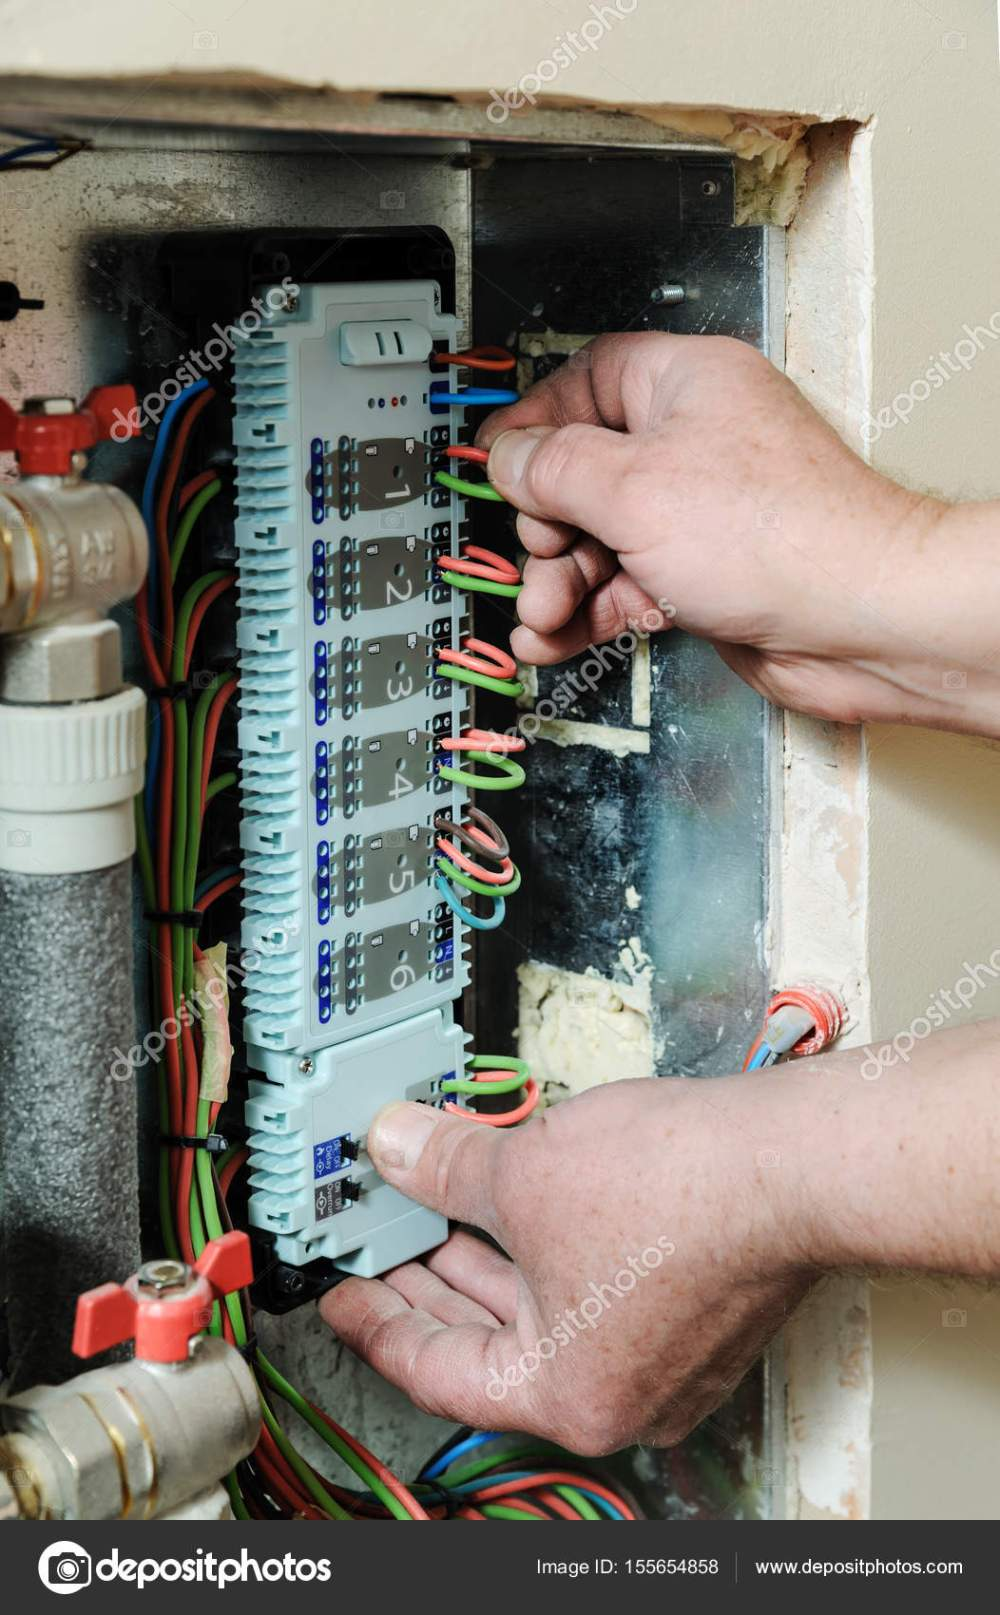 medium resolution of switching signal wires in the home s heating system control stock photo